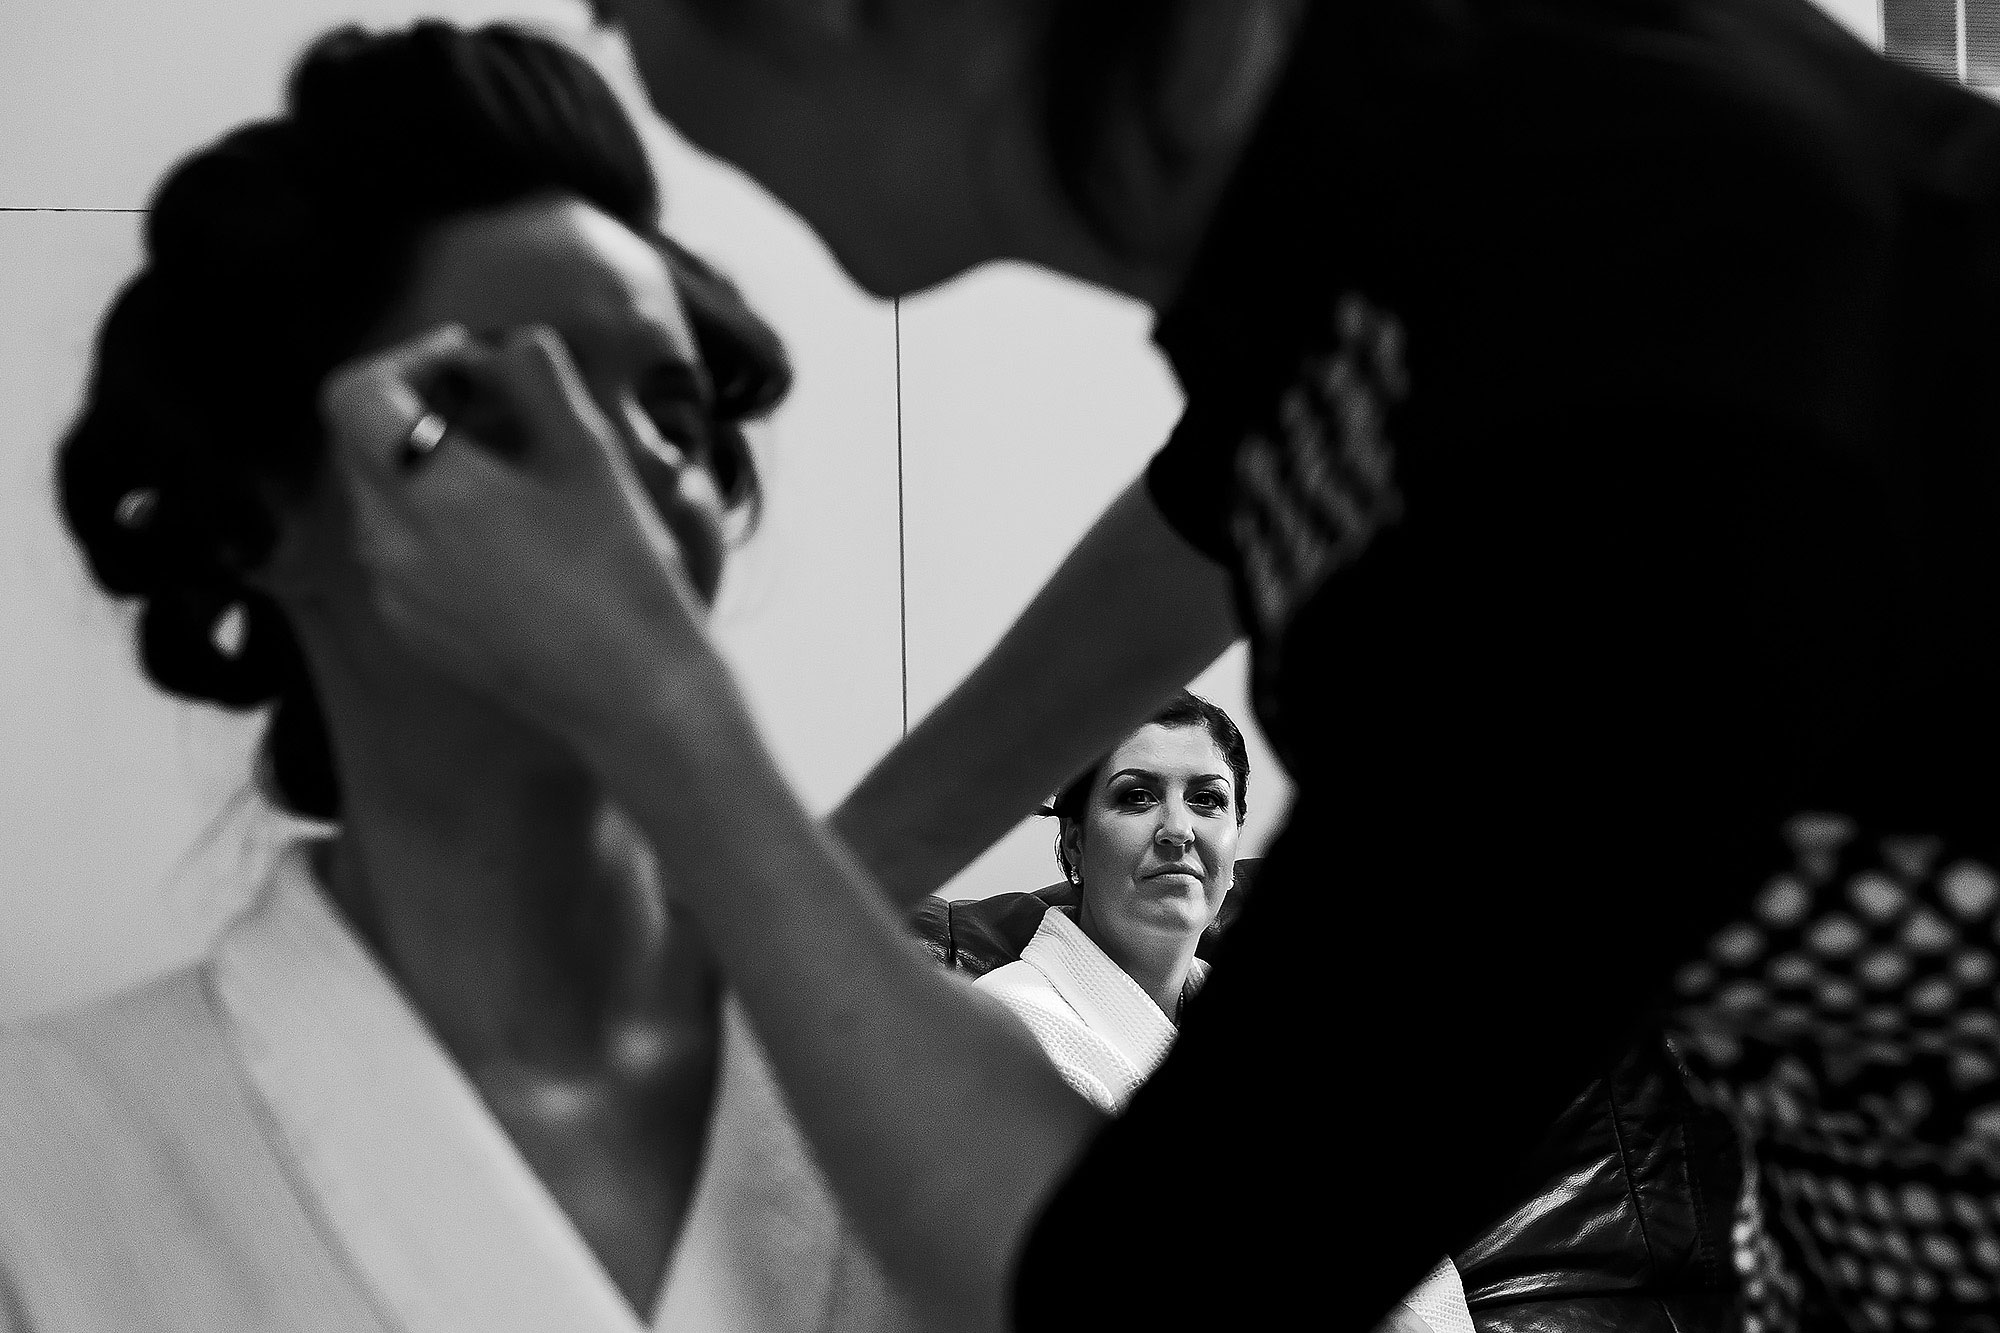 Bride having make up applied on the morning of her bridesmaids watch in the distance | Summer wedding at Wellbeing Farm - Toni Darcy Photography